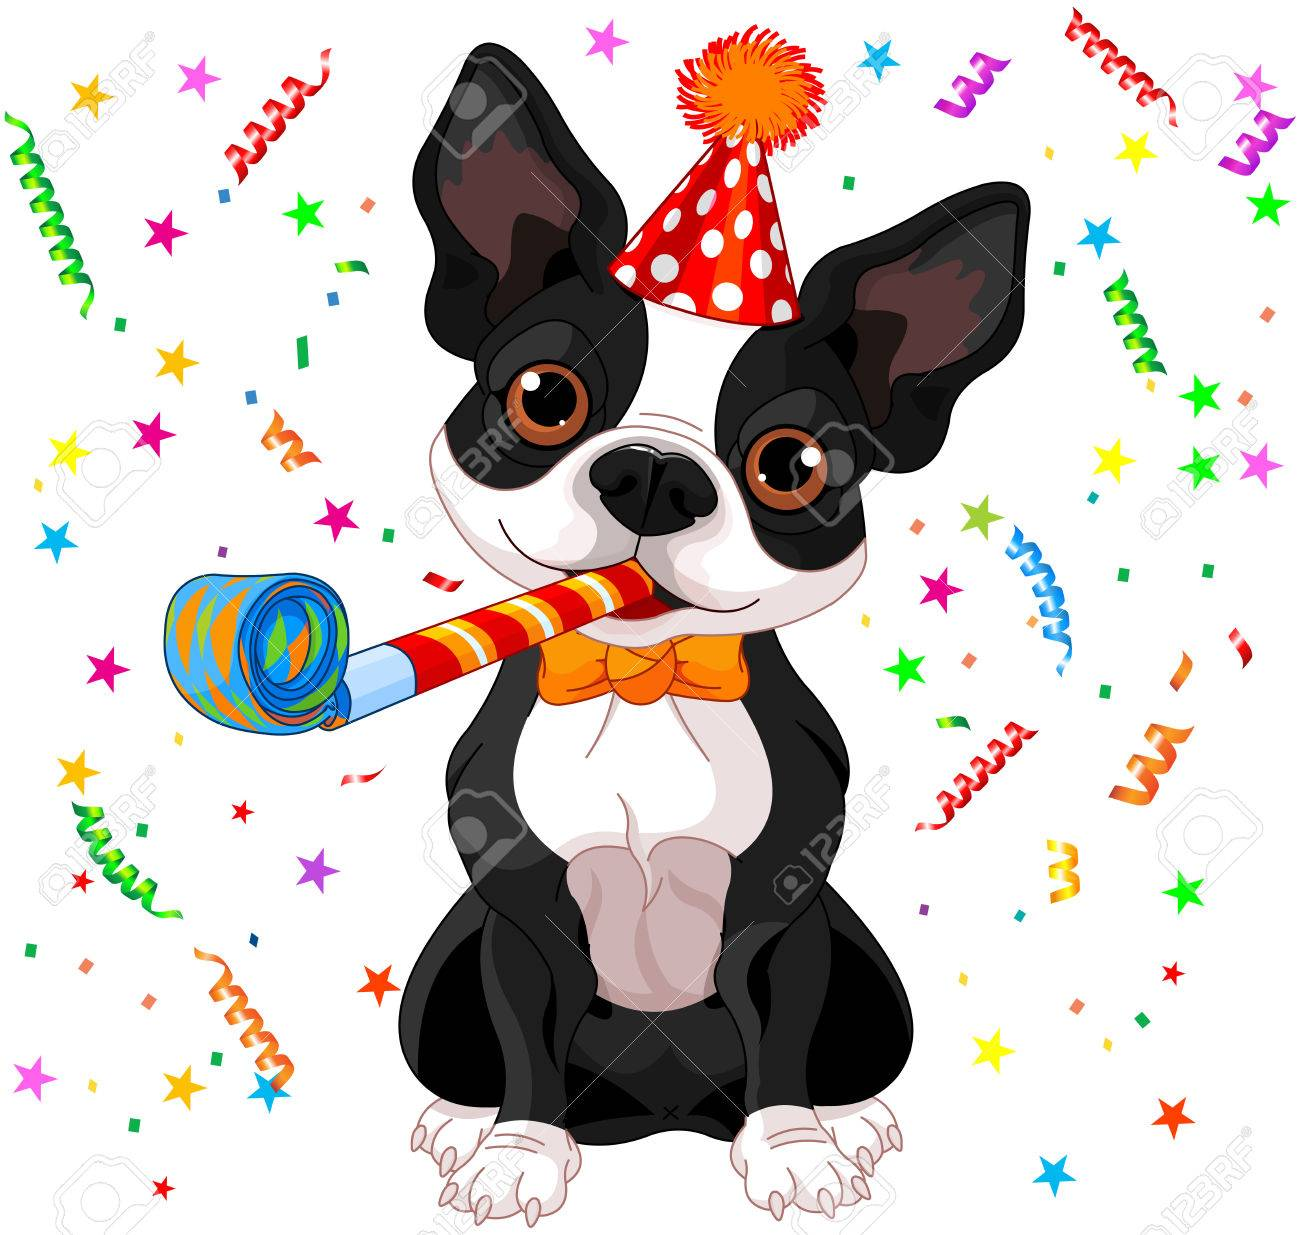 Adoptons! - Page 10 35588778-illustration-of-cute-boston-terrier-celebrating